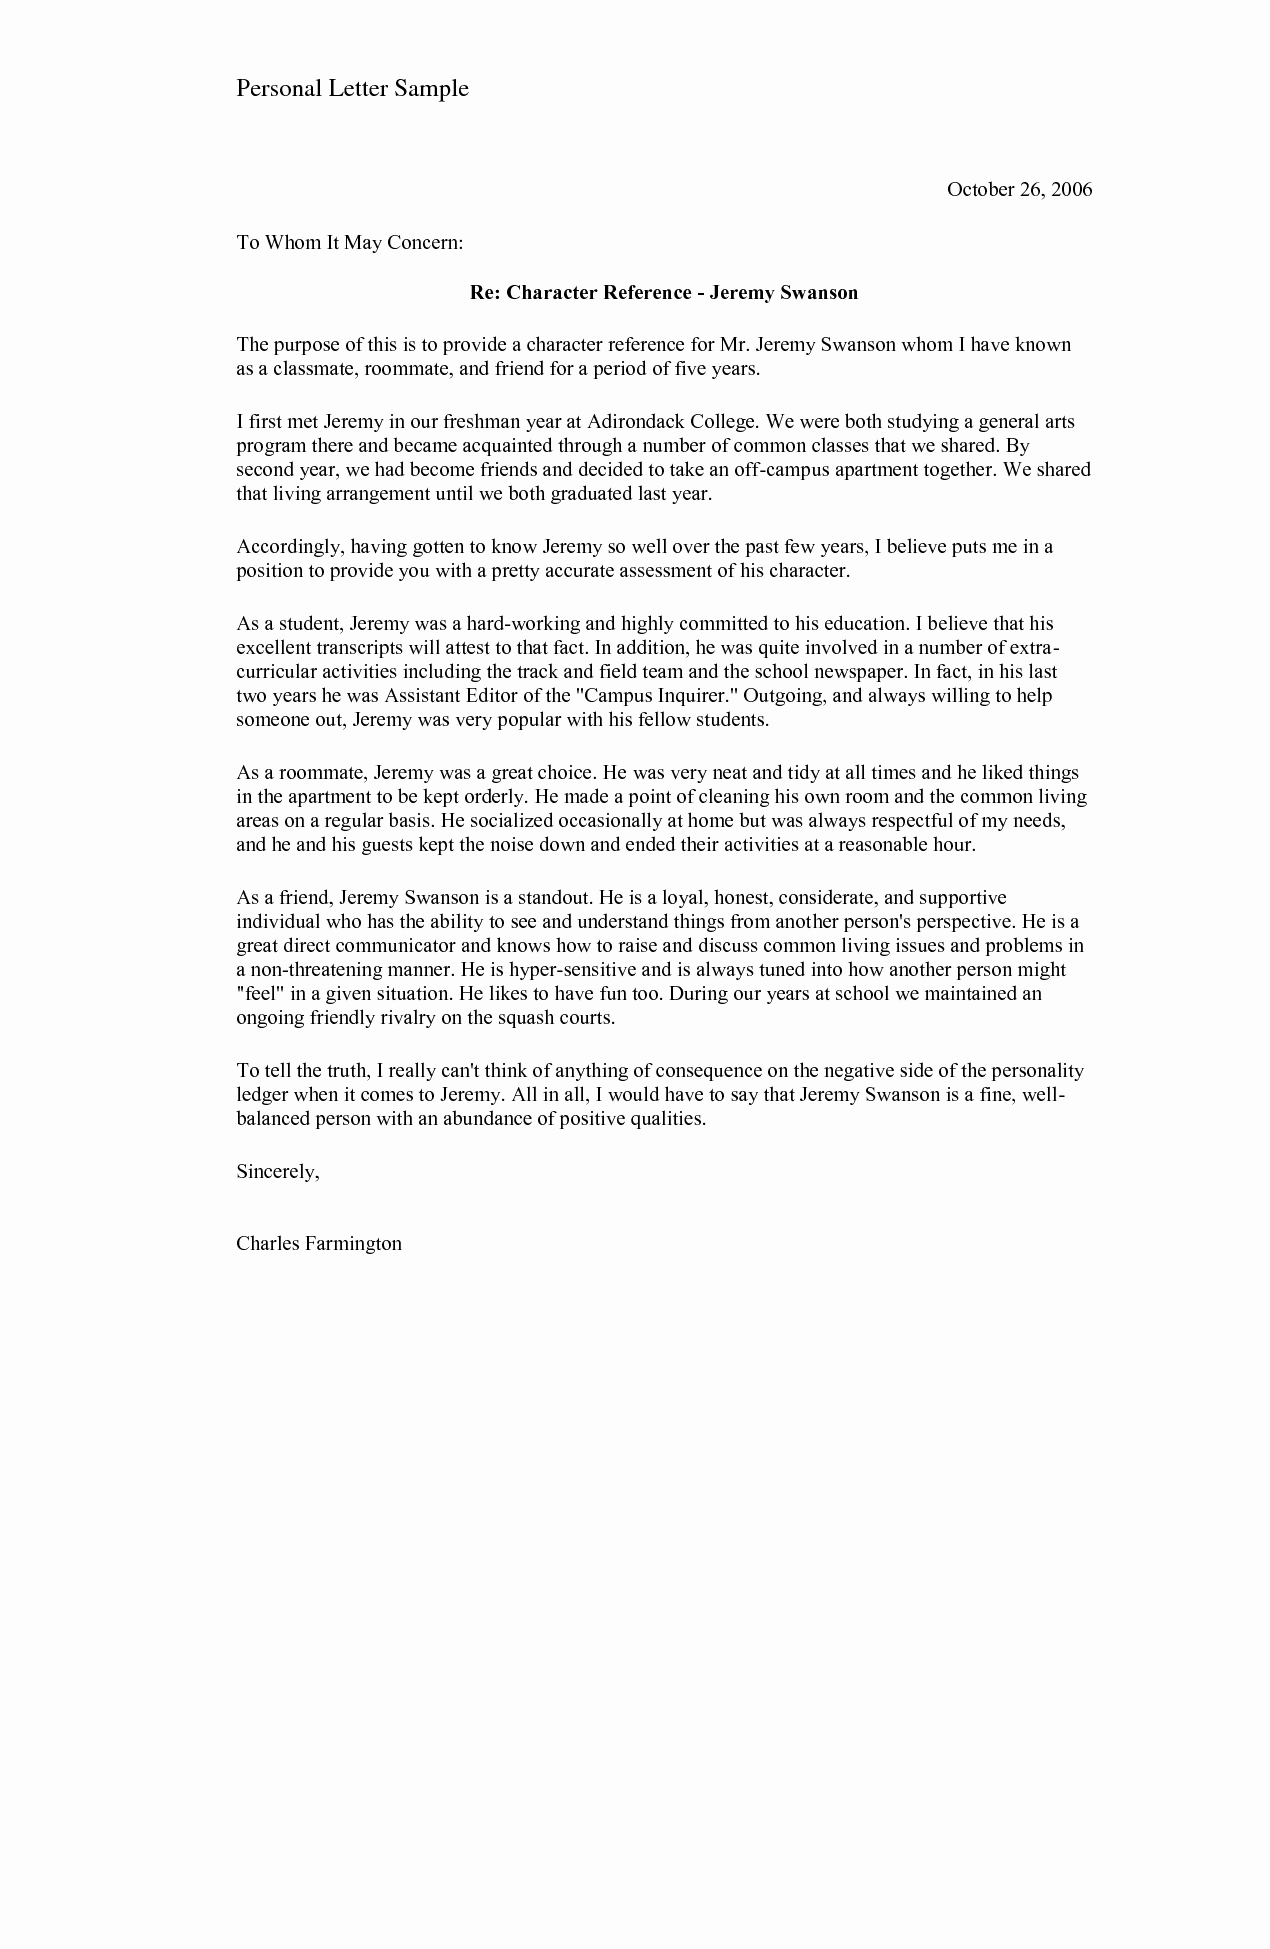 Personal Reference Letter Template Free New Sample Personal Character Reference for A Friend